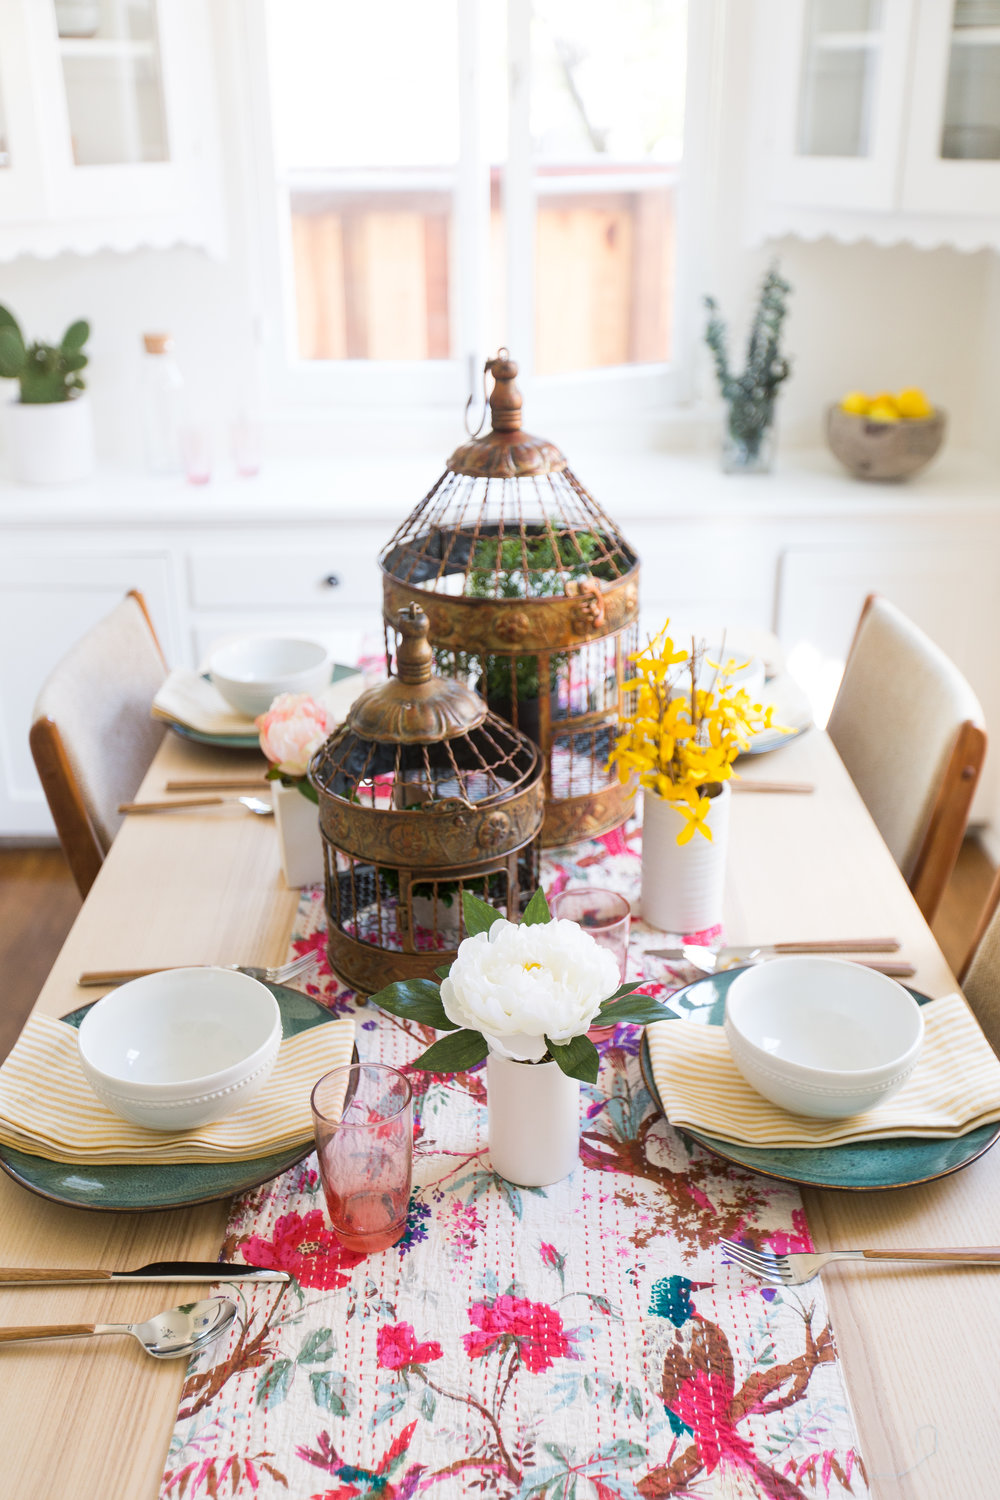 Red Bear Square Jamie Clugston Brunch Tablescape Design